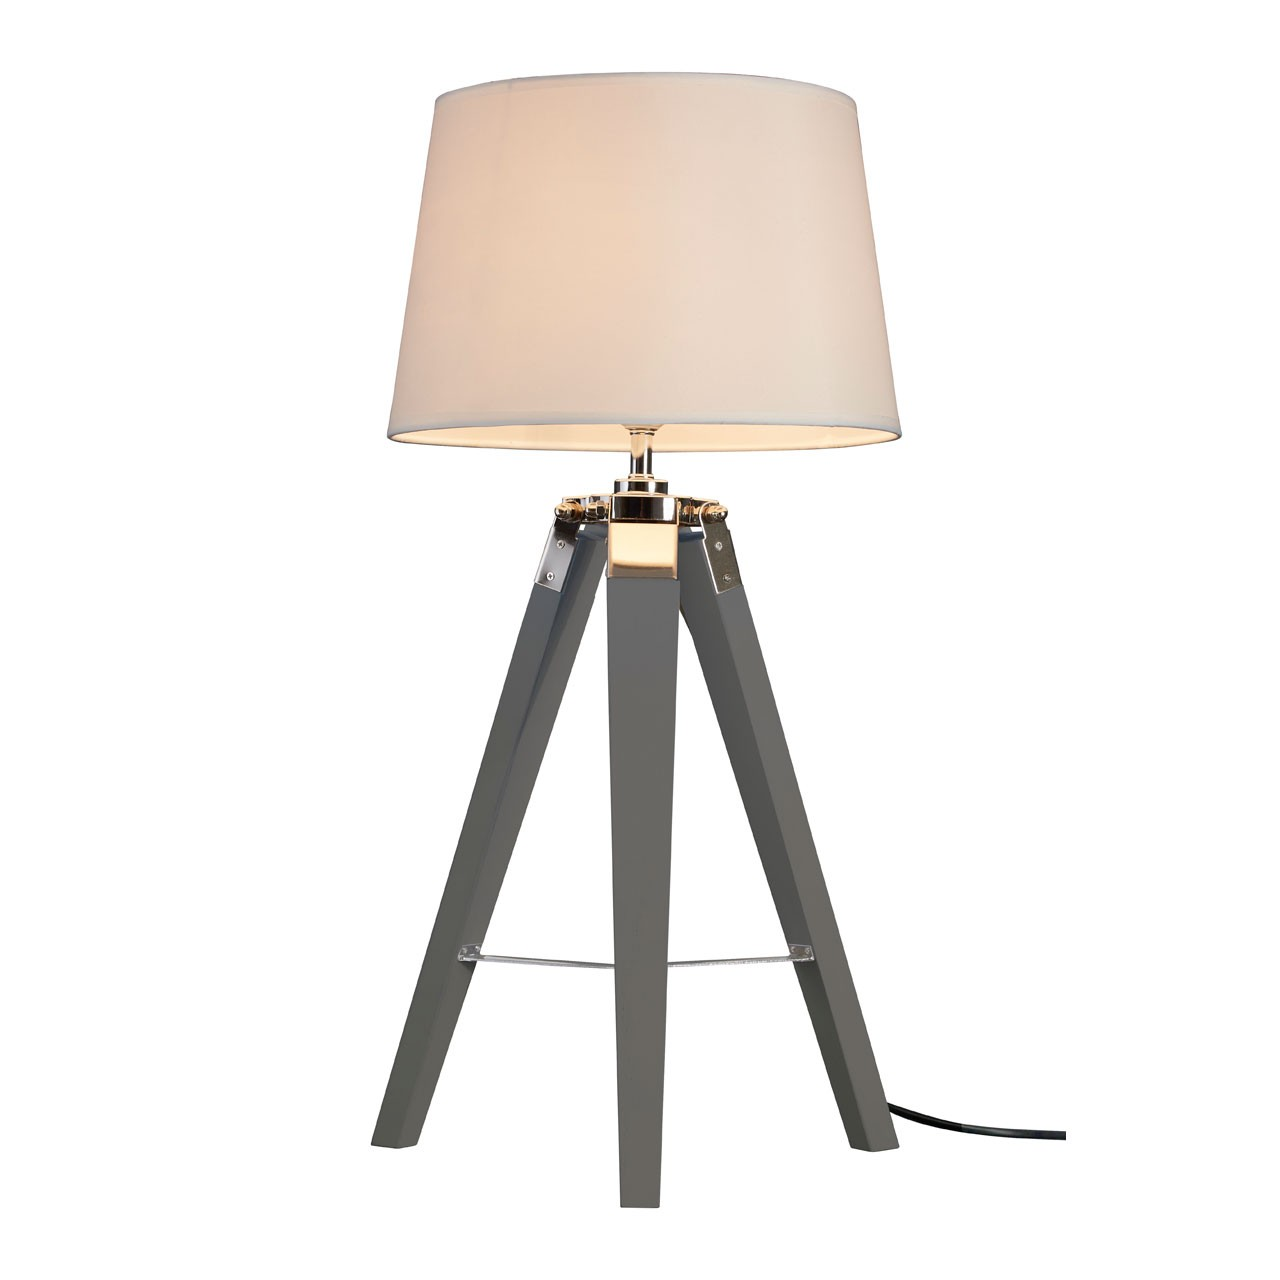 Bailey Tripod Table Lamp Natural Coloured Fabric Shade